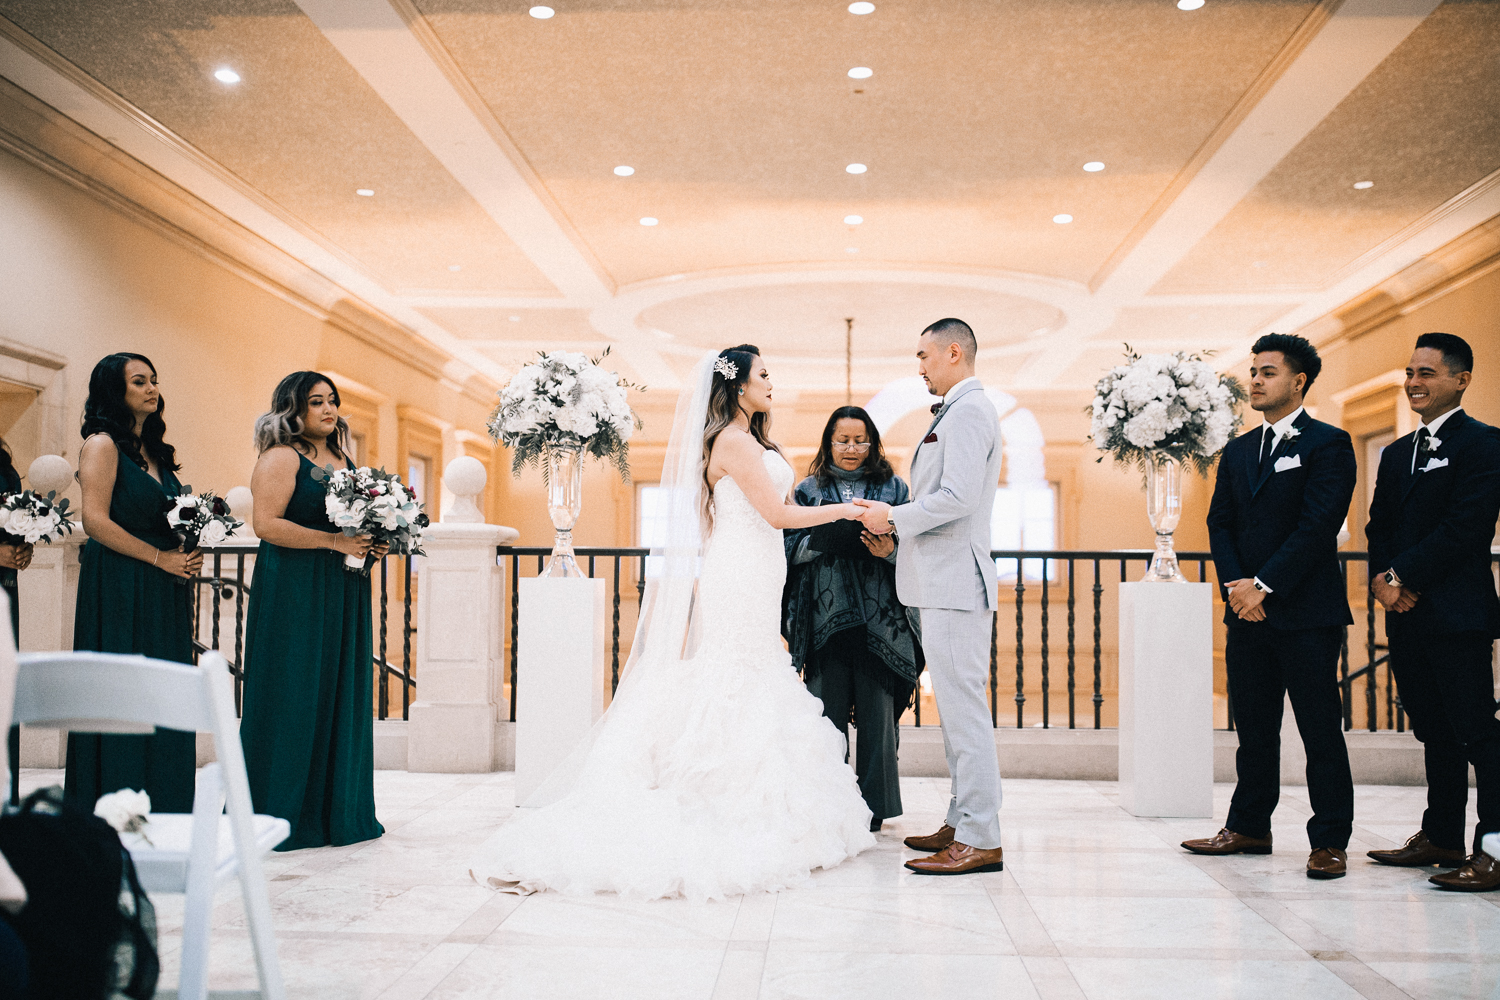 2019_01_ 202019.01.20 Santiago Wedding Blog Photos Edited For Web 0089.jpg